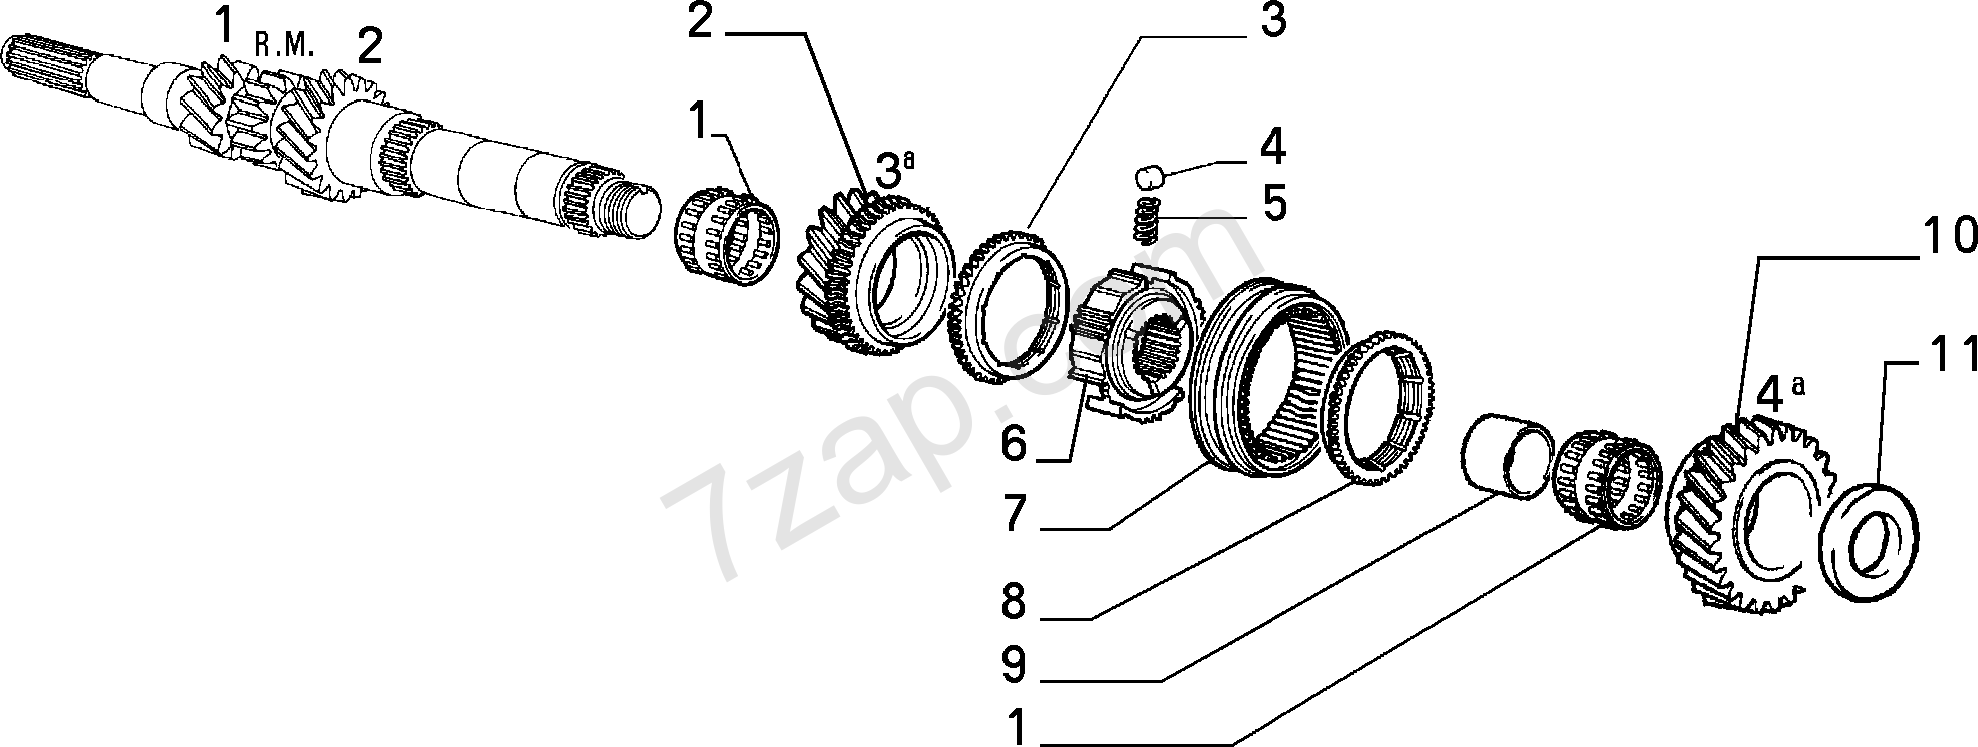 fiat palio engine diagram the fiat car